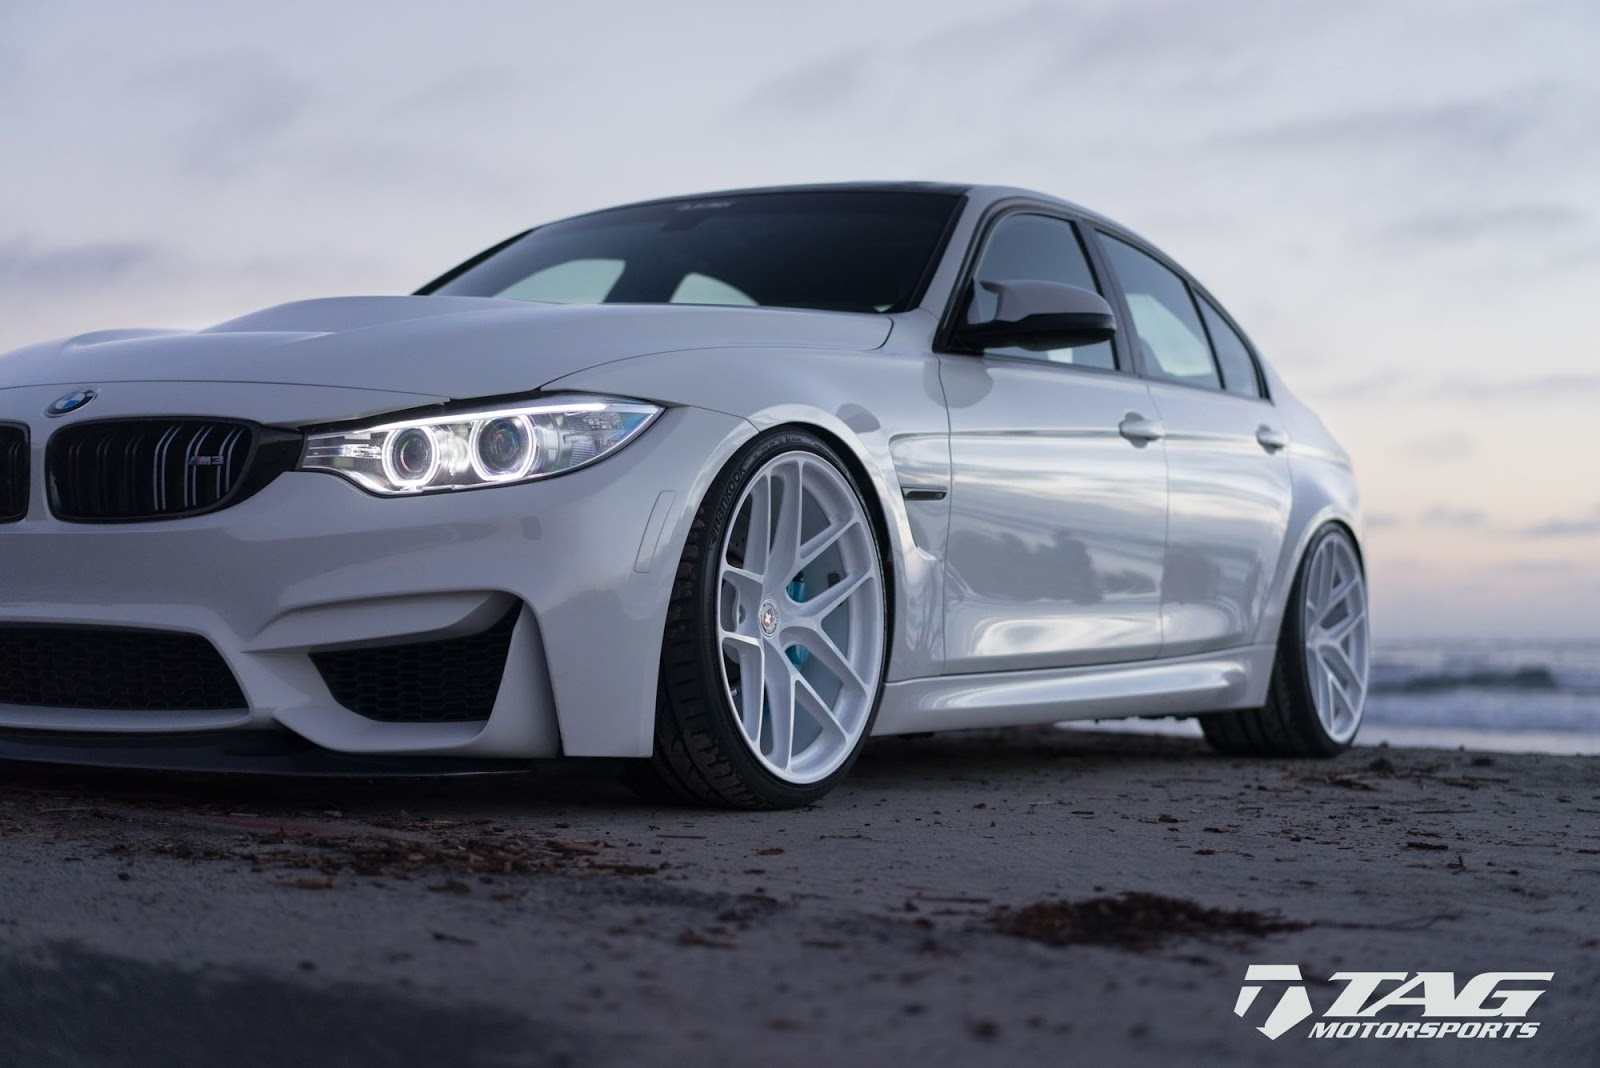 All-White BMW M3 Is A Unique Tuning Project | Carscoops